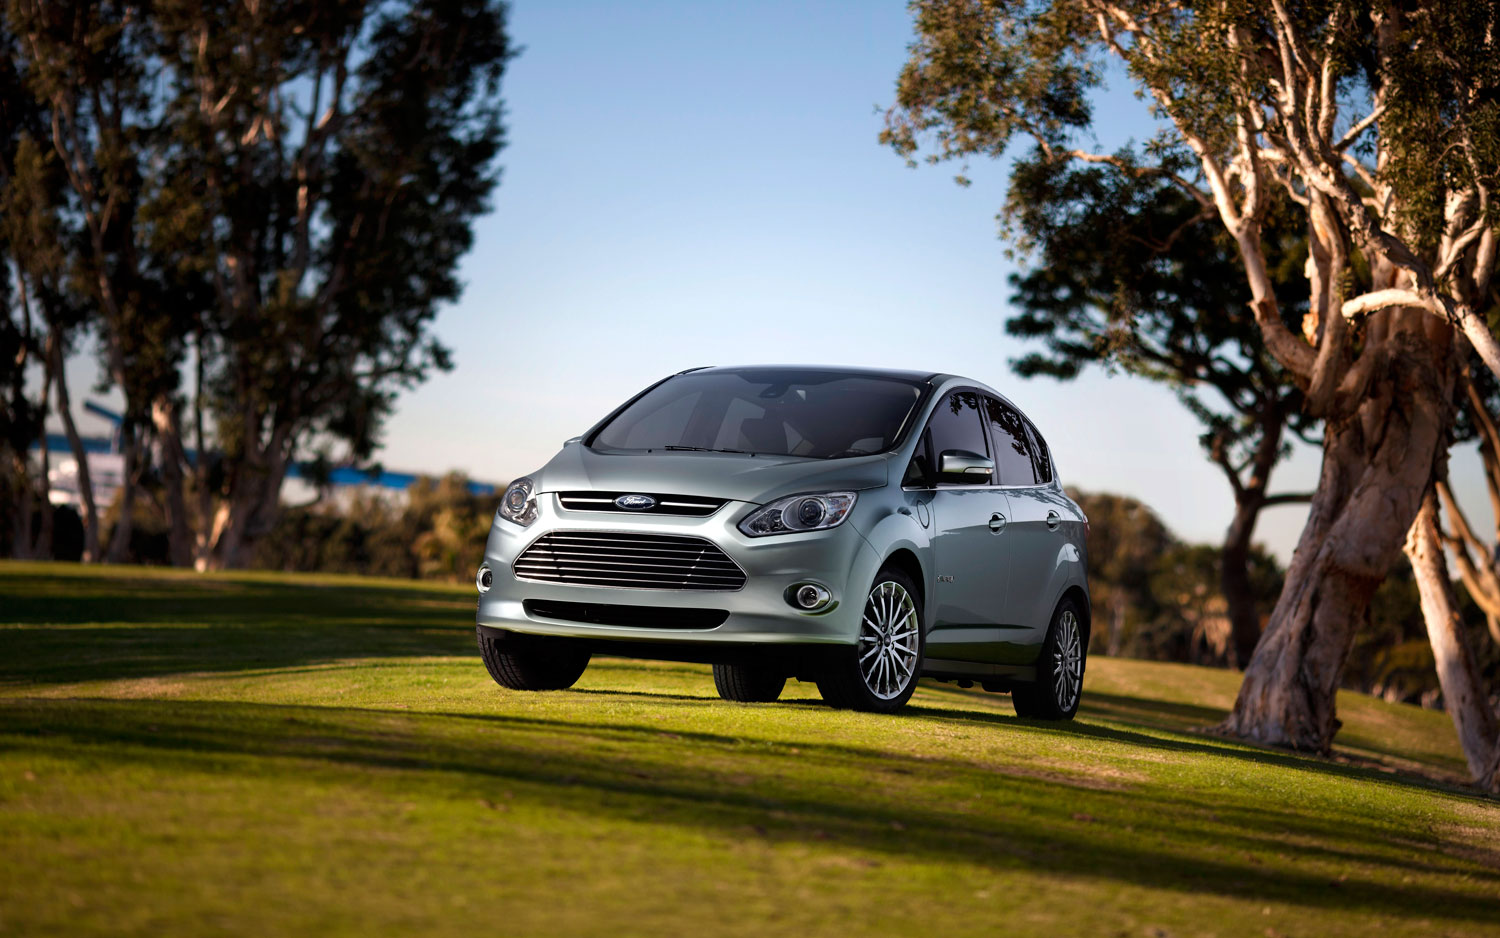 2013 Ford C Max Energi Front View1